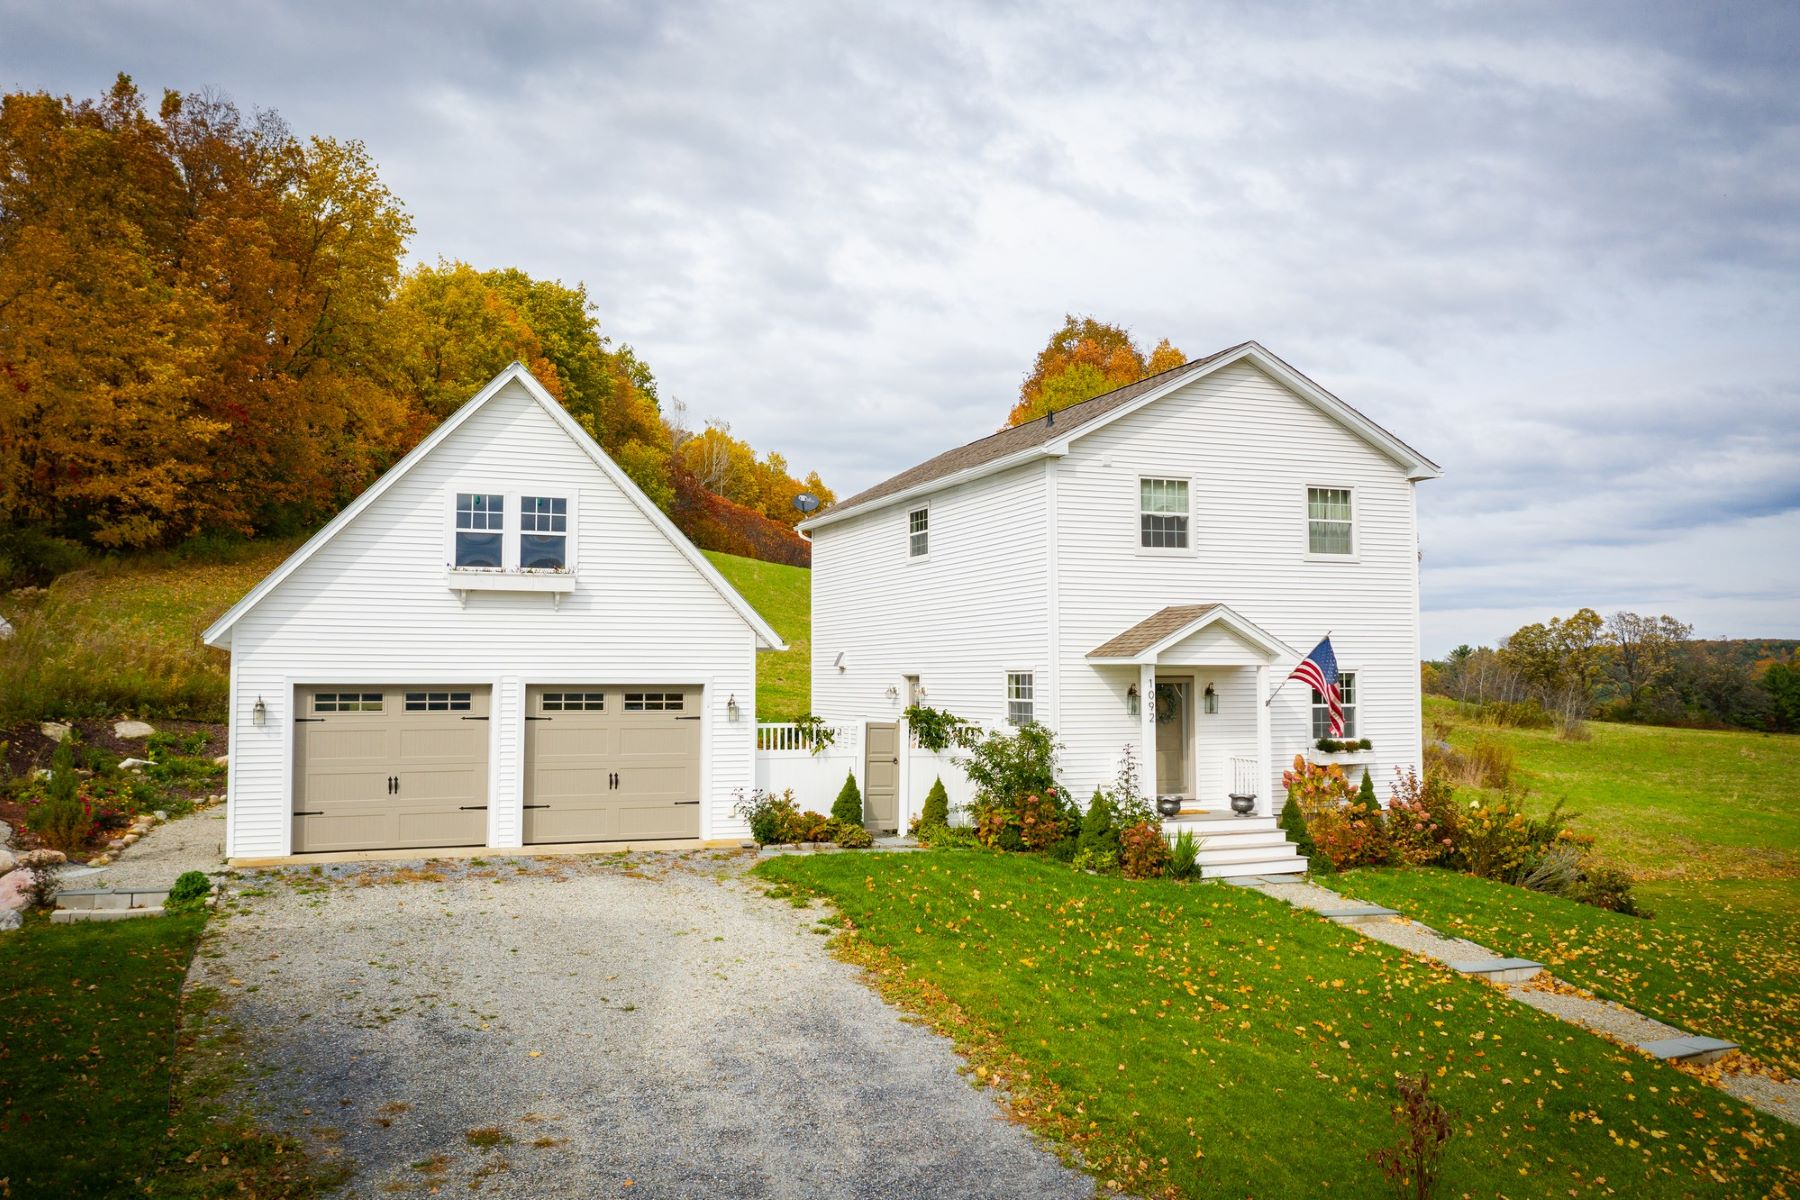 Single Family Homes for Sale at Vermont Farmhouse 1092 Roscoe Rd Charlotte, Vermont 05445 United States